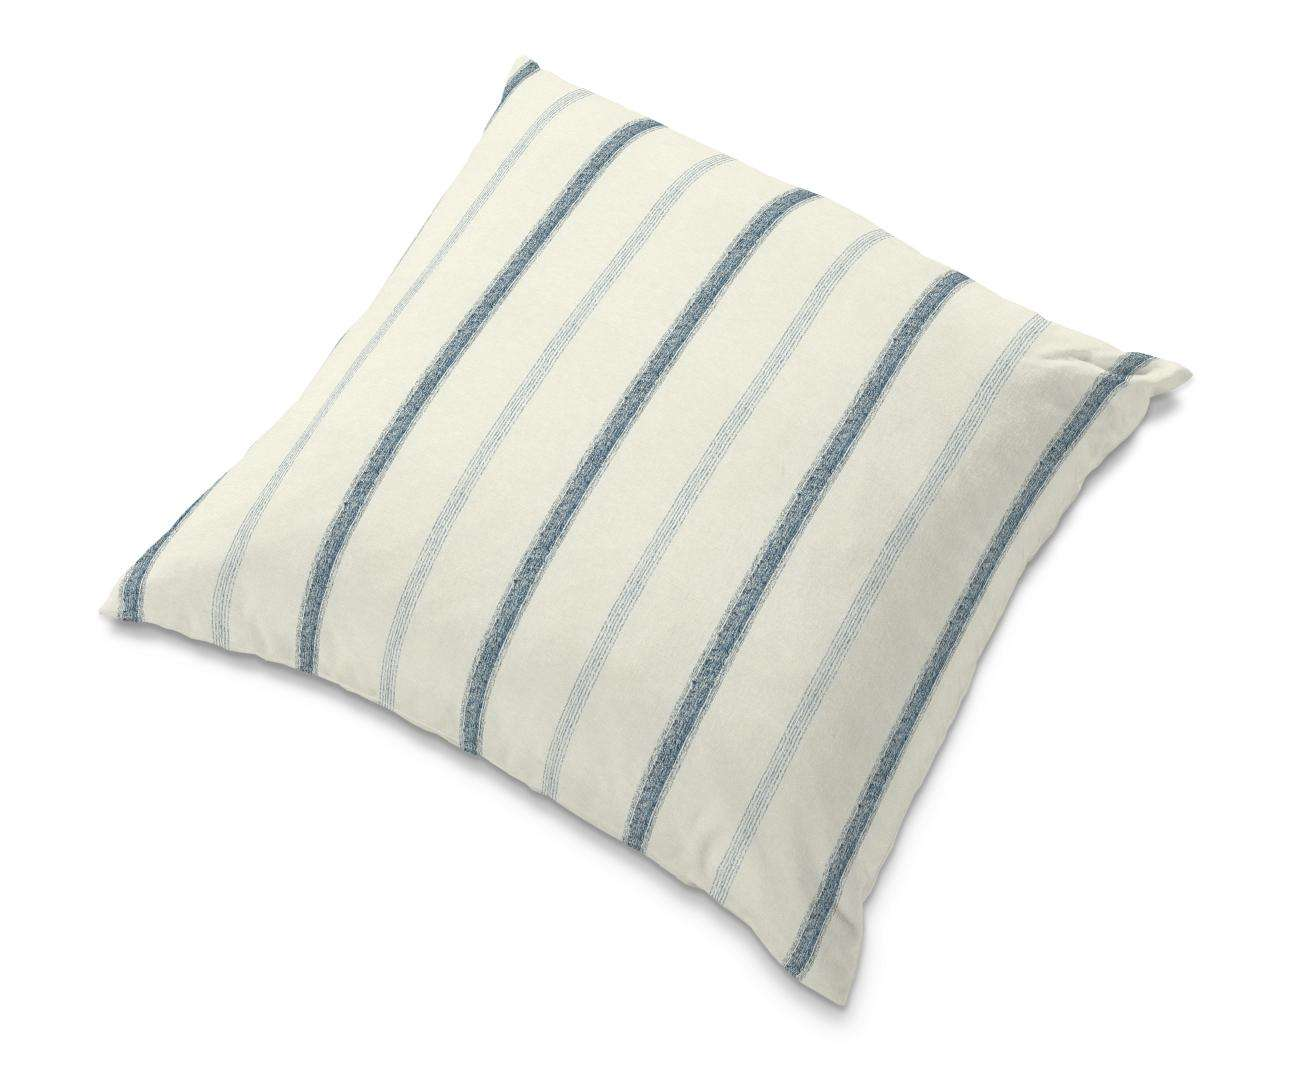 Tomelilla cushion cover in collection Avinon, fabric: 129-66